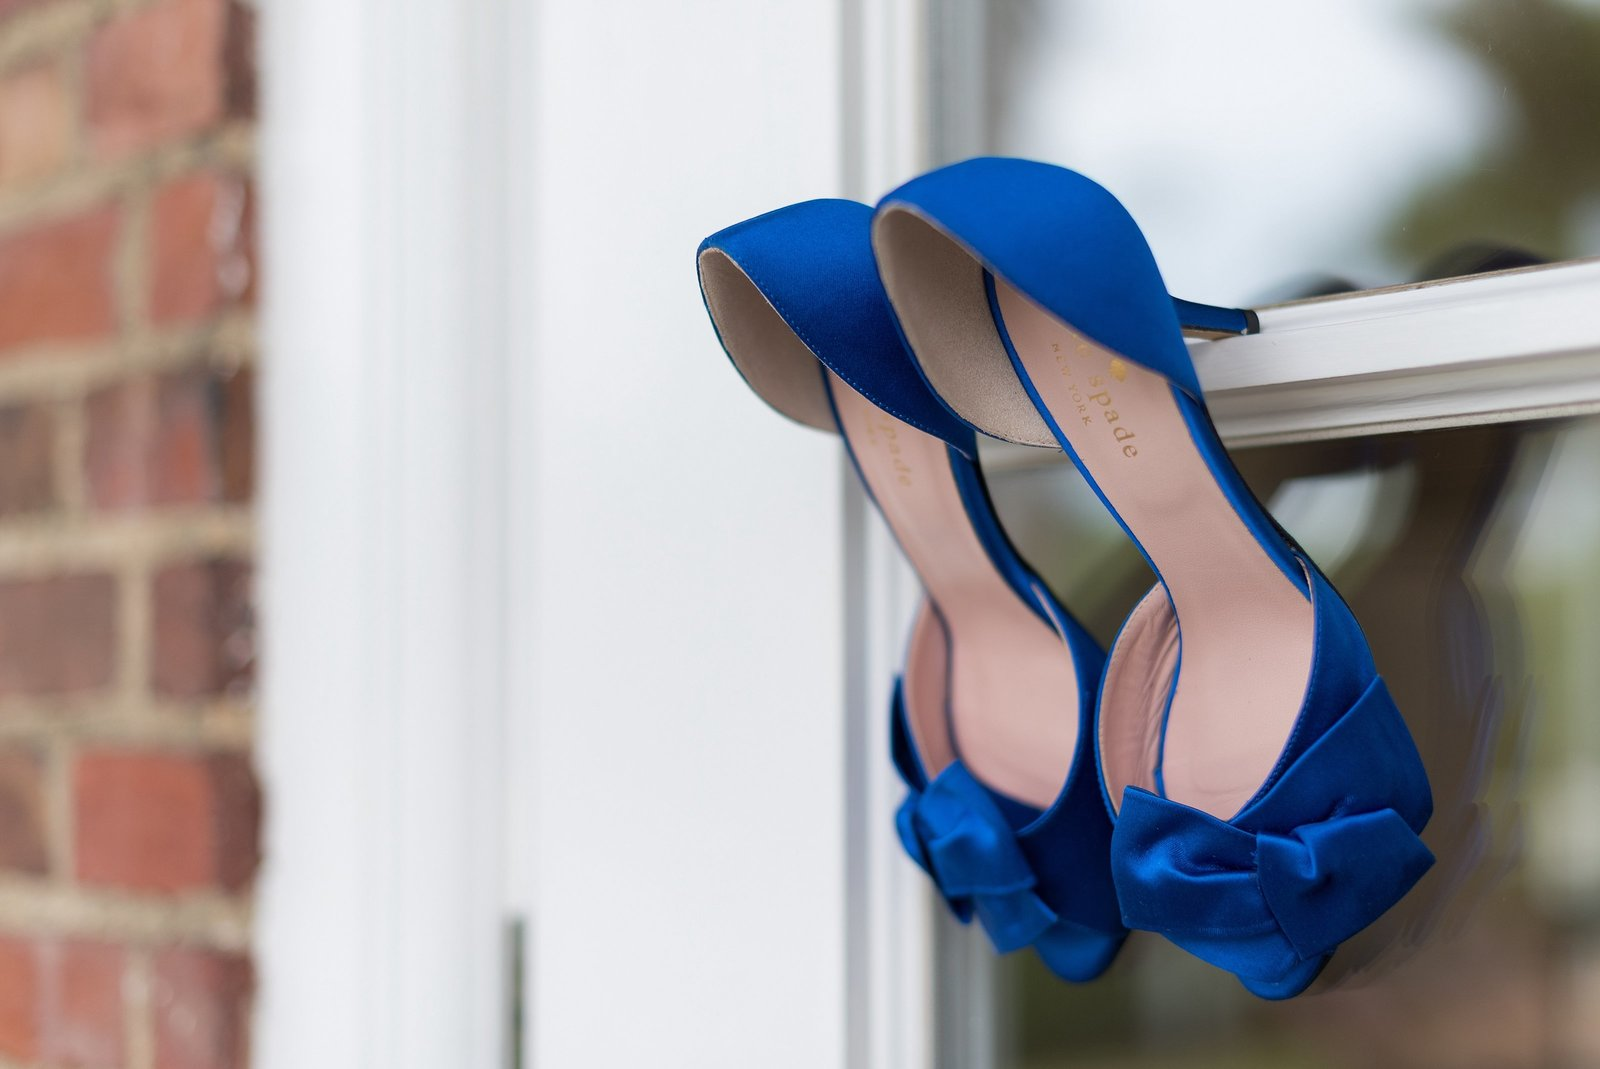 Royal Blue Kate Spade Shoes Hanging on Window photo